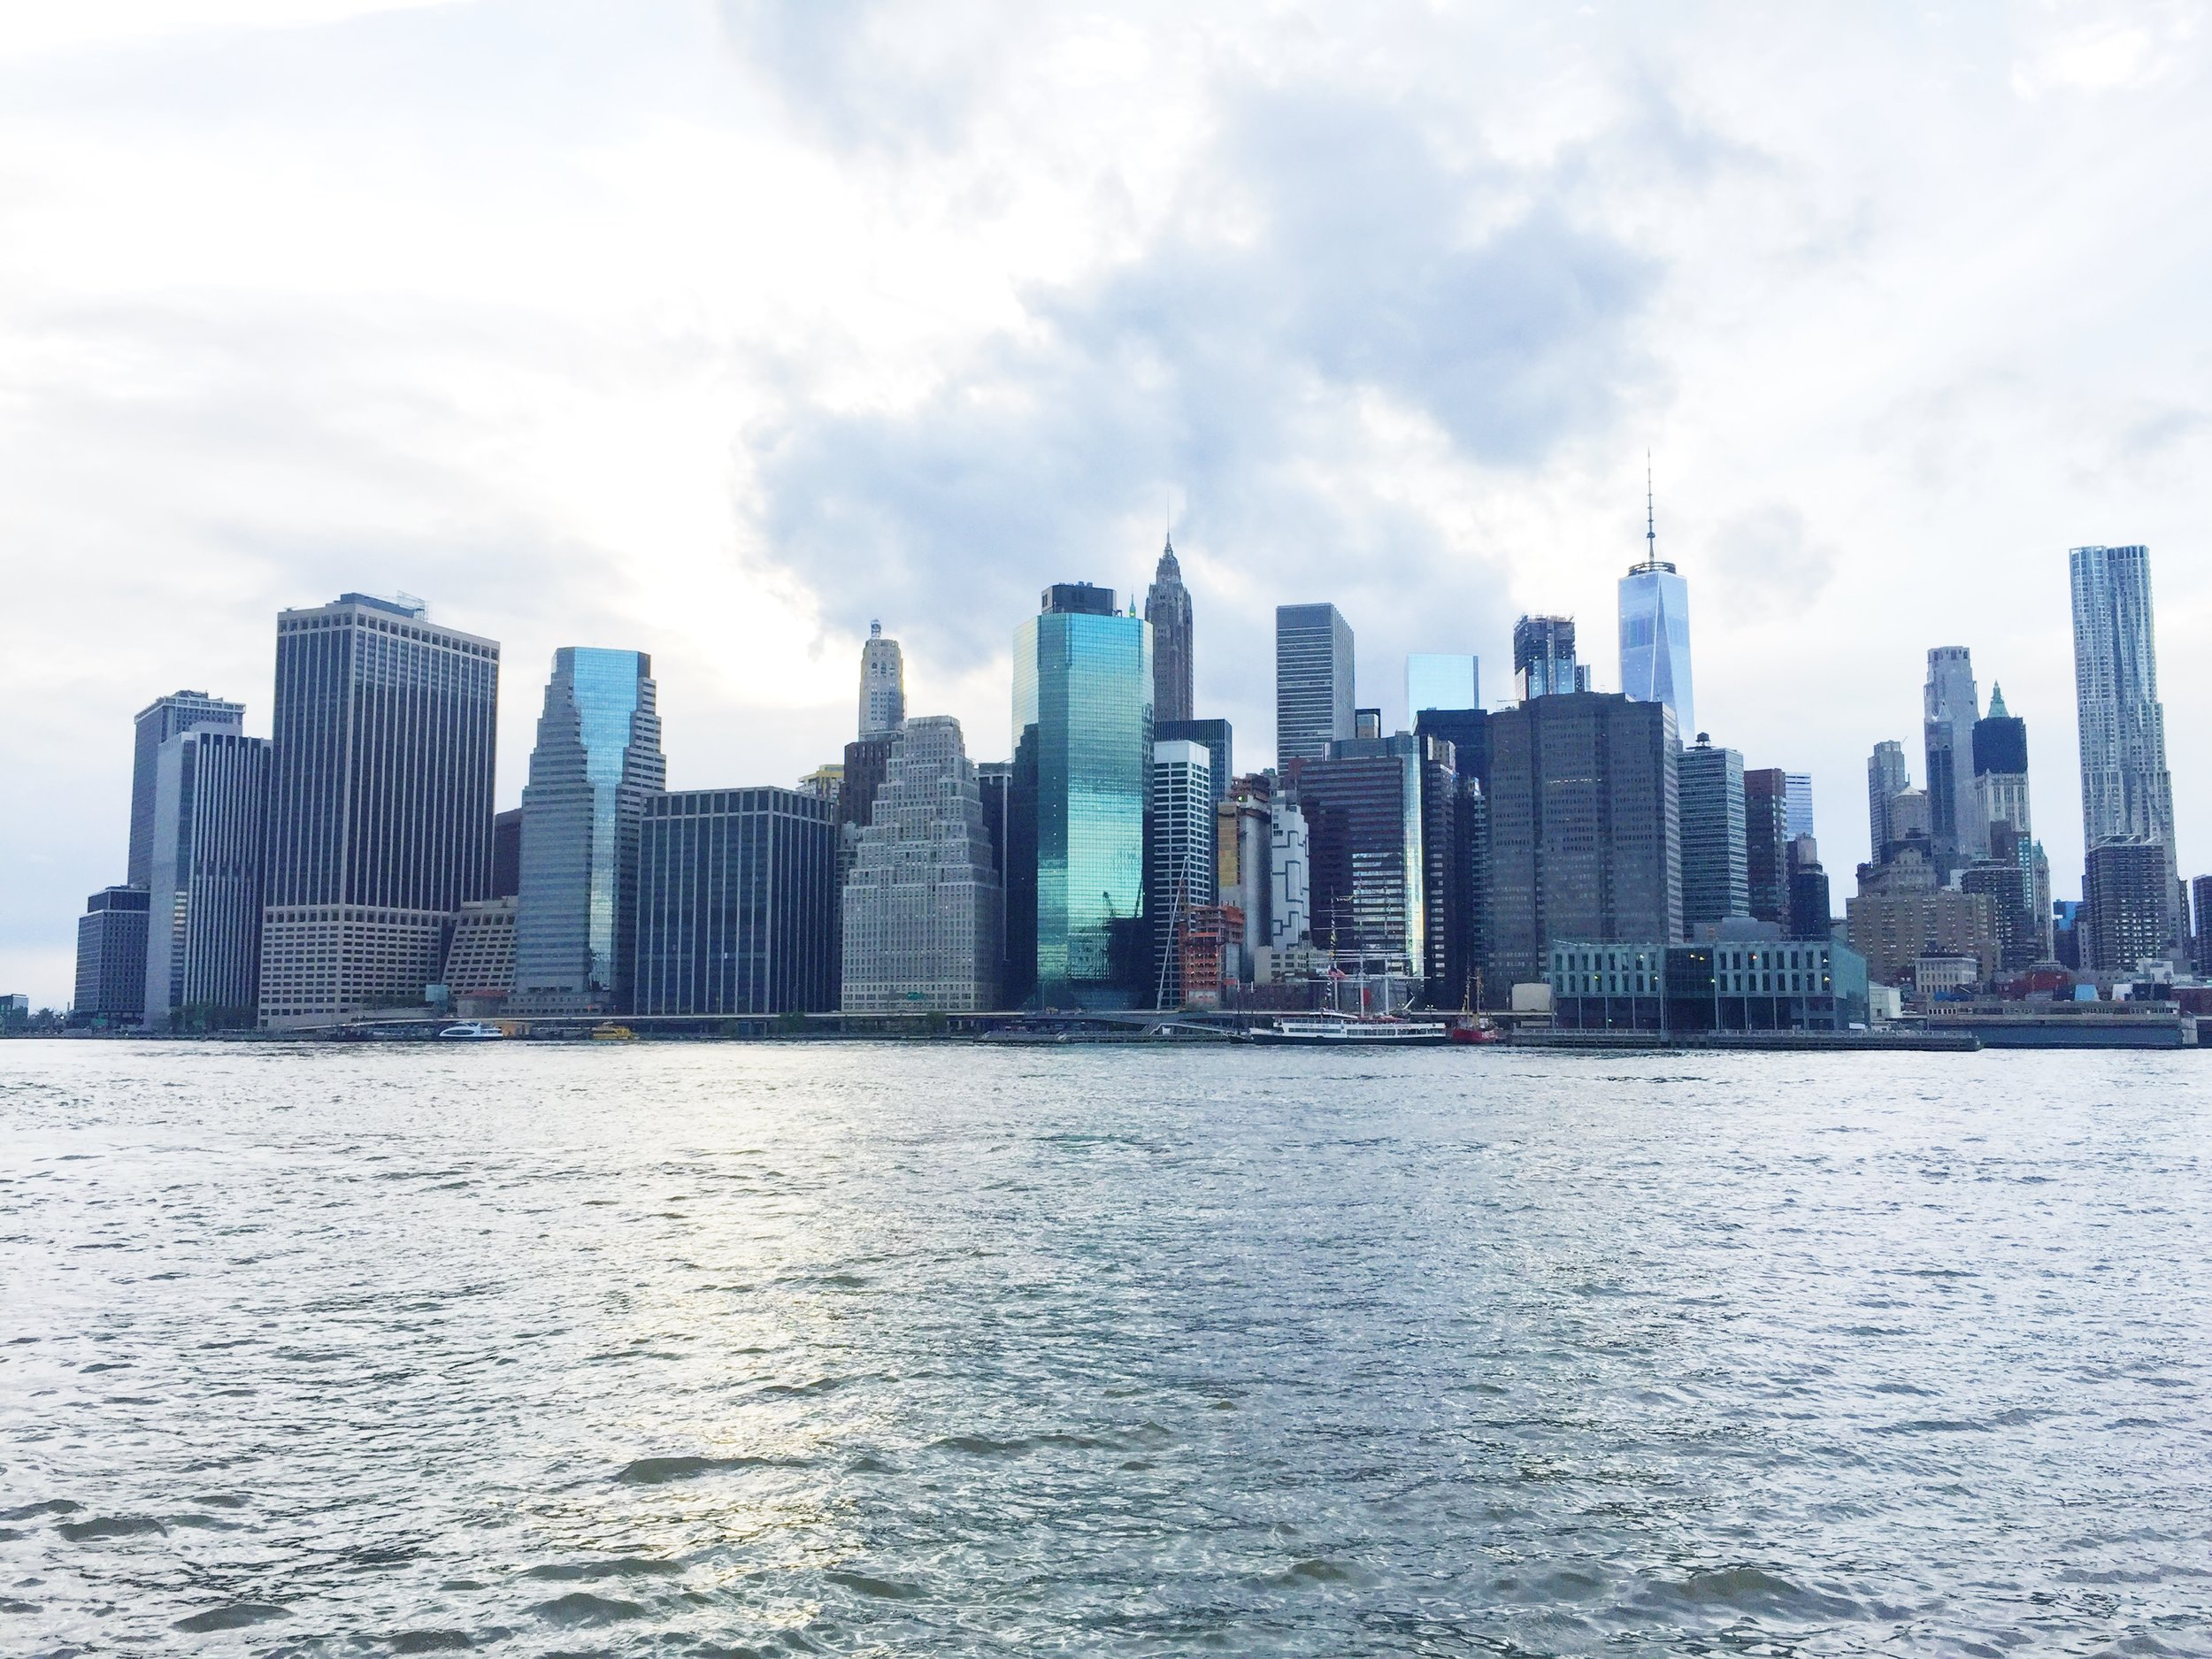 of course, the iconic skyline of NYC